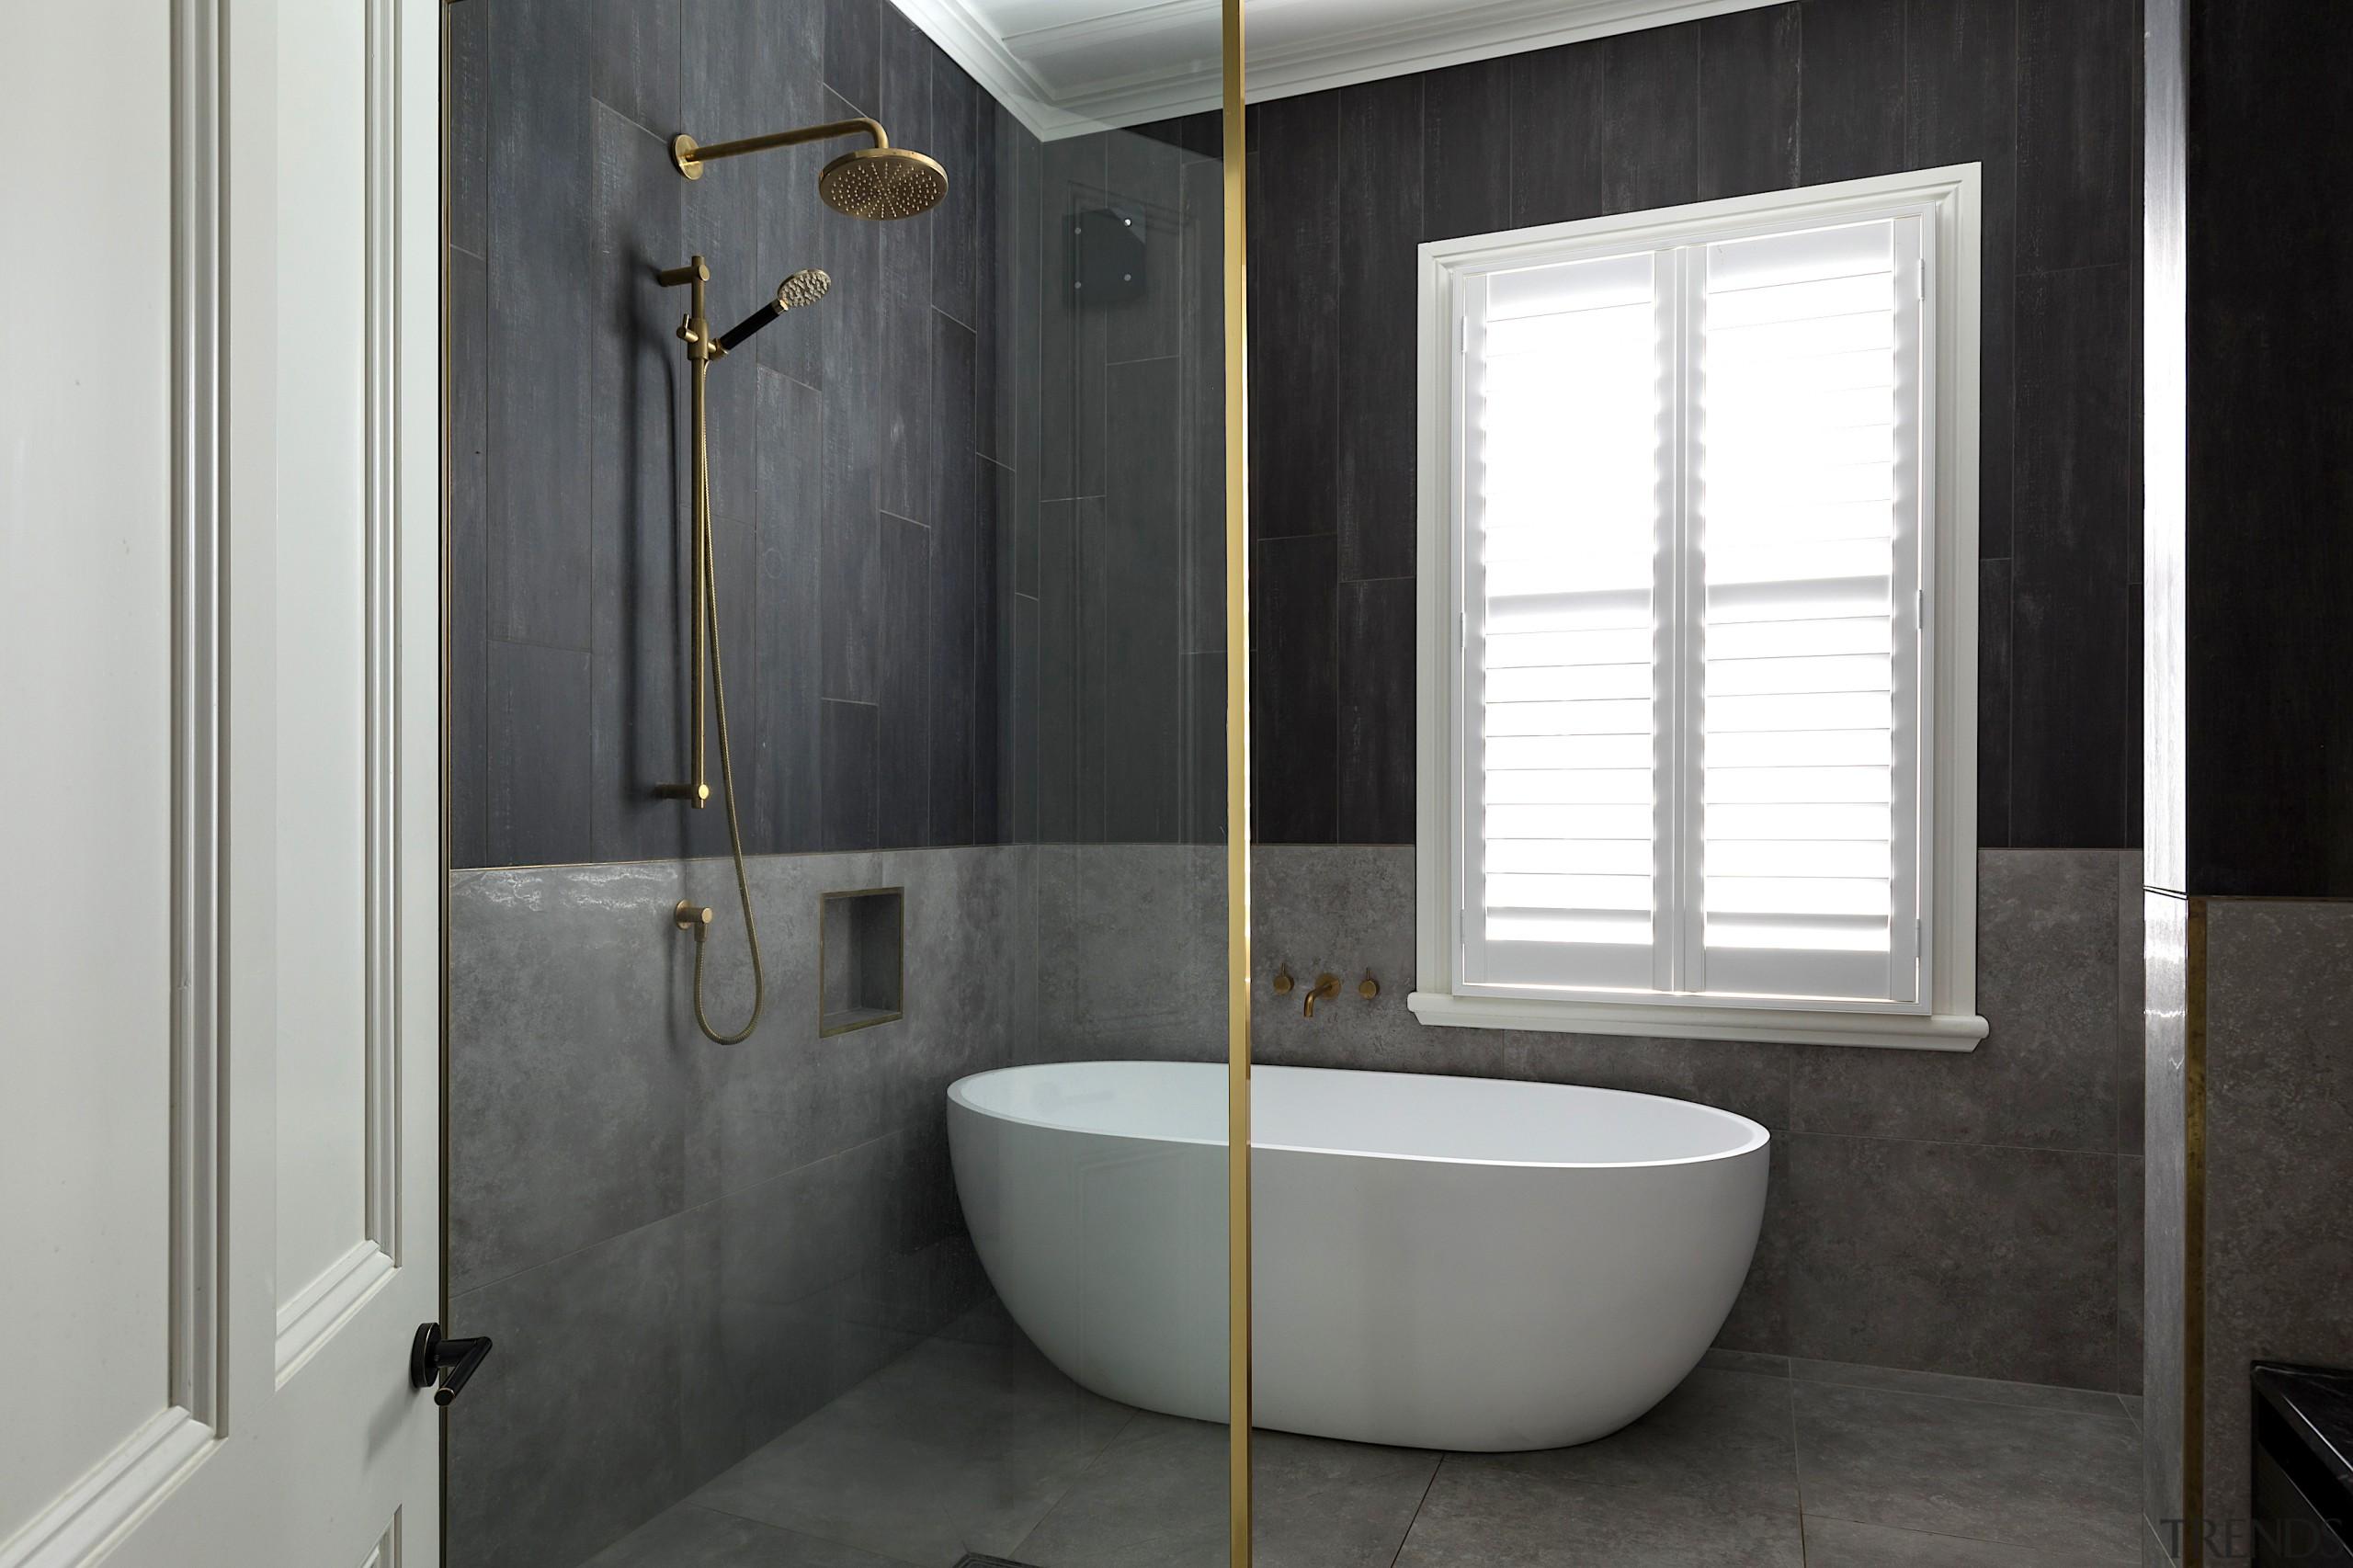 Brushed brass detailing and burnt timber-look tiles give